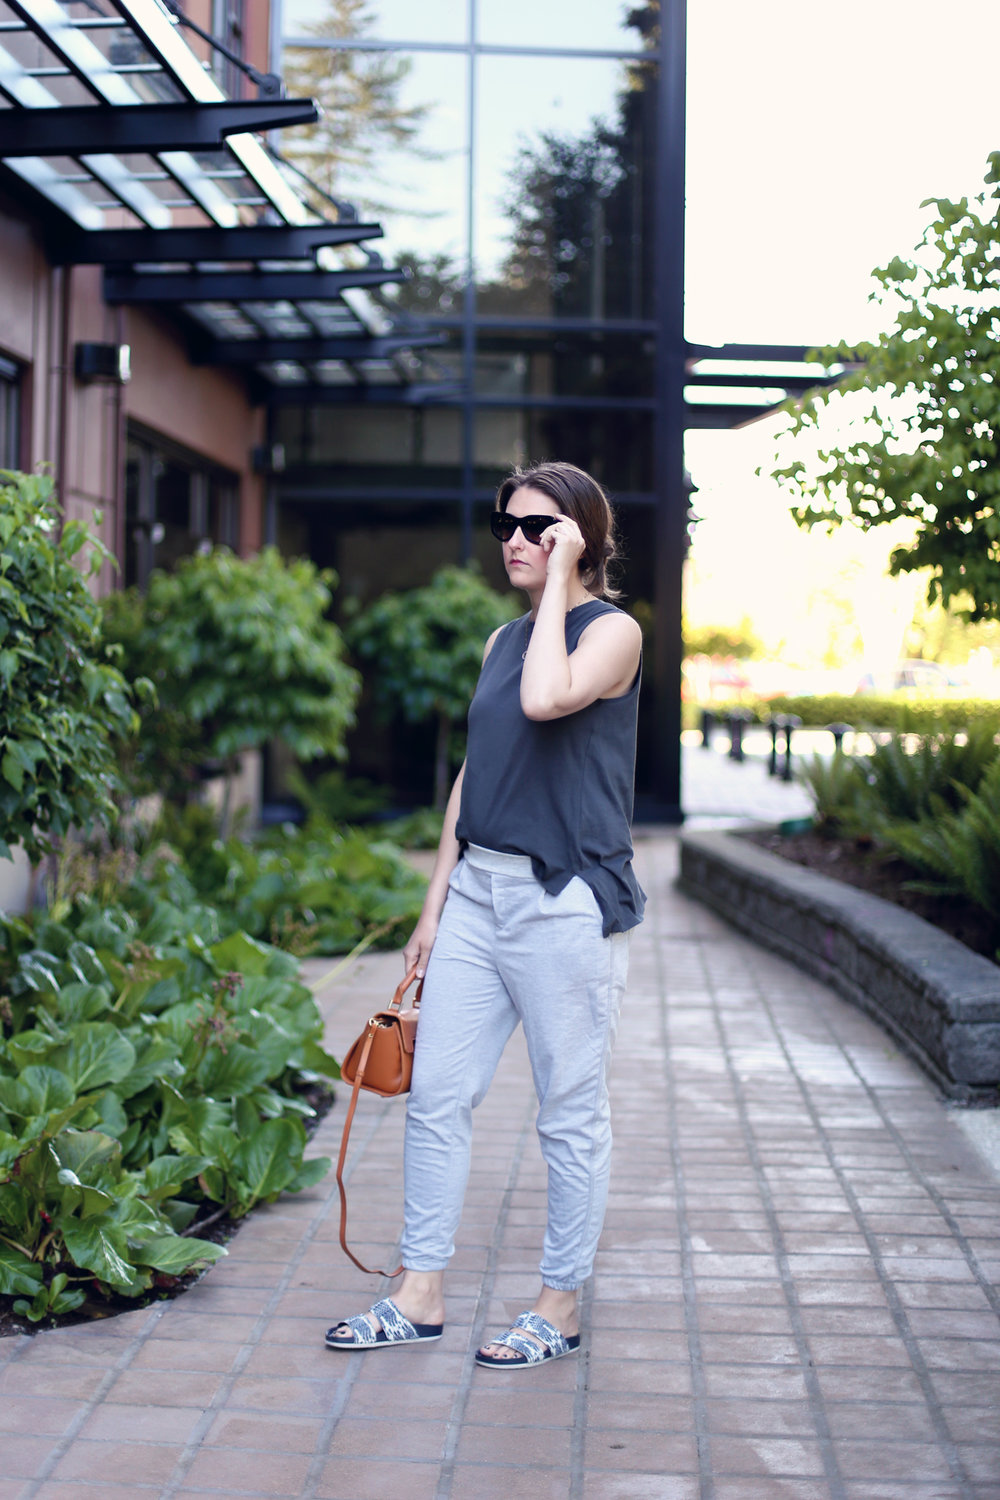 My favourite lazy outfit: grey sweatpants, sandals, a Mezzi bag, and black sunglasses.